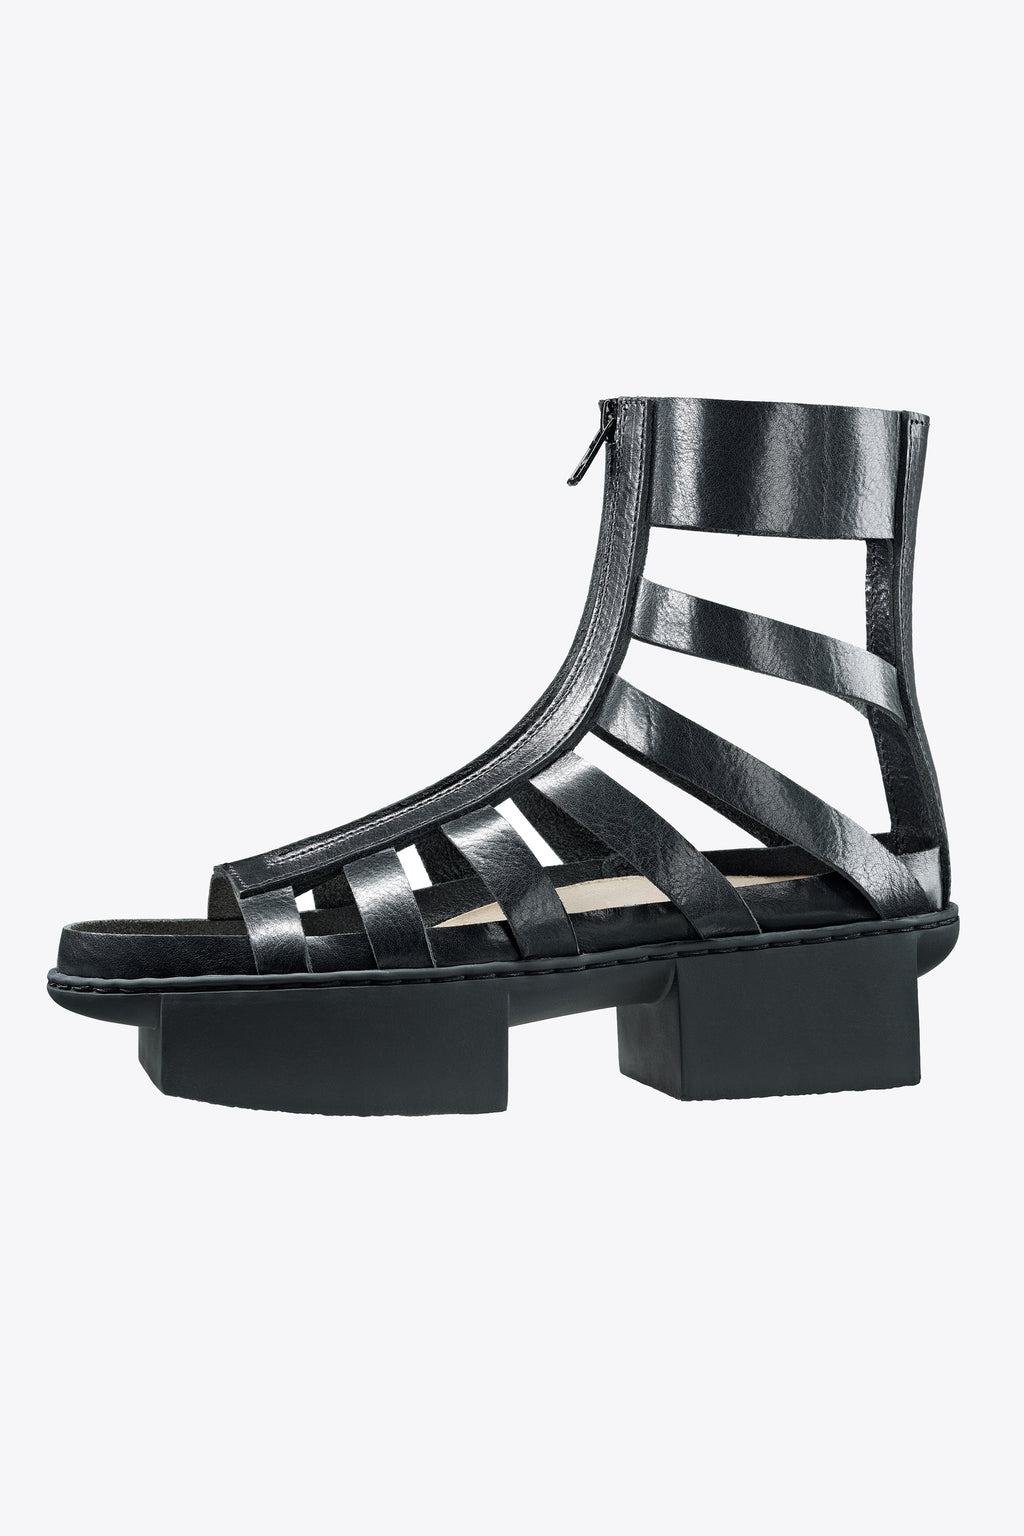 Trippen Intense Sandal in Black